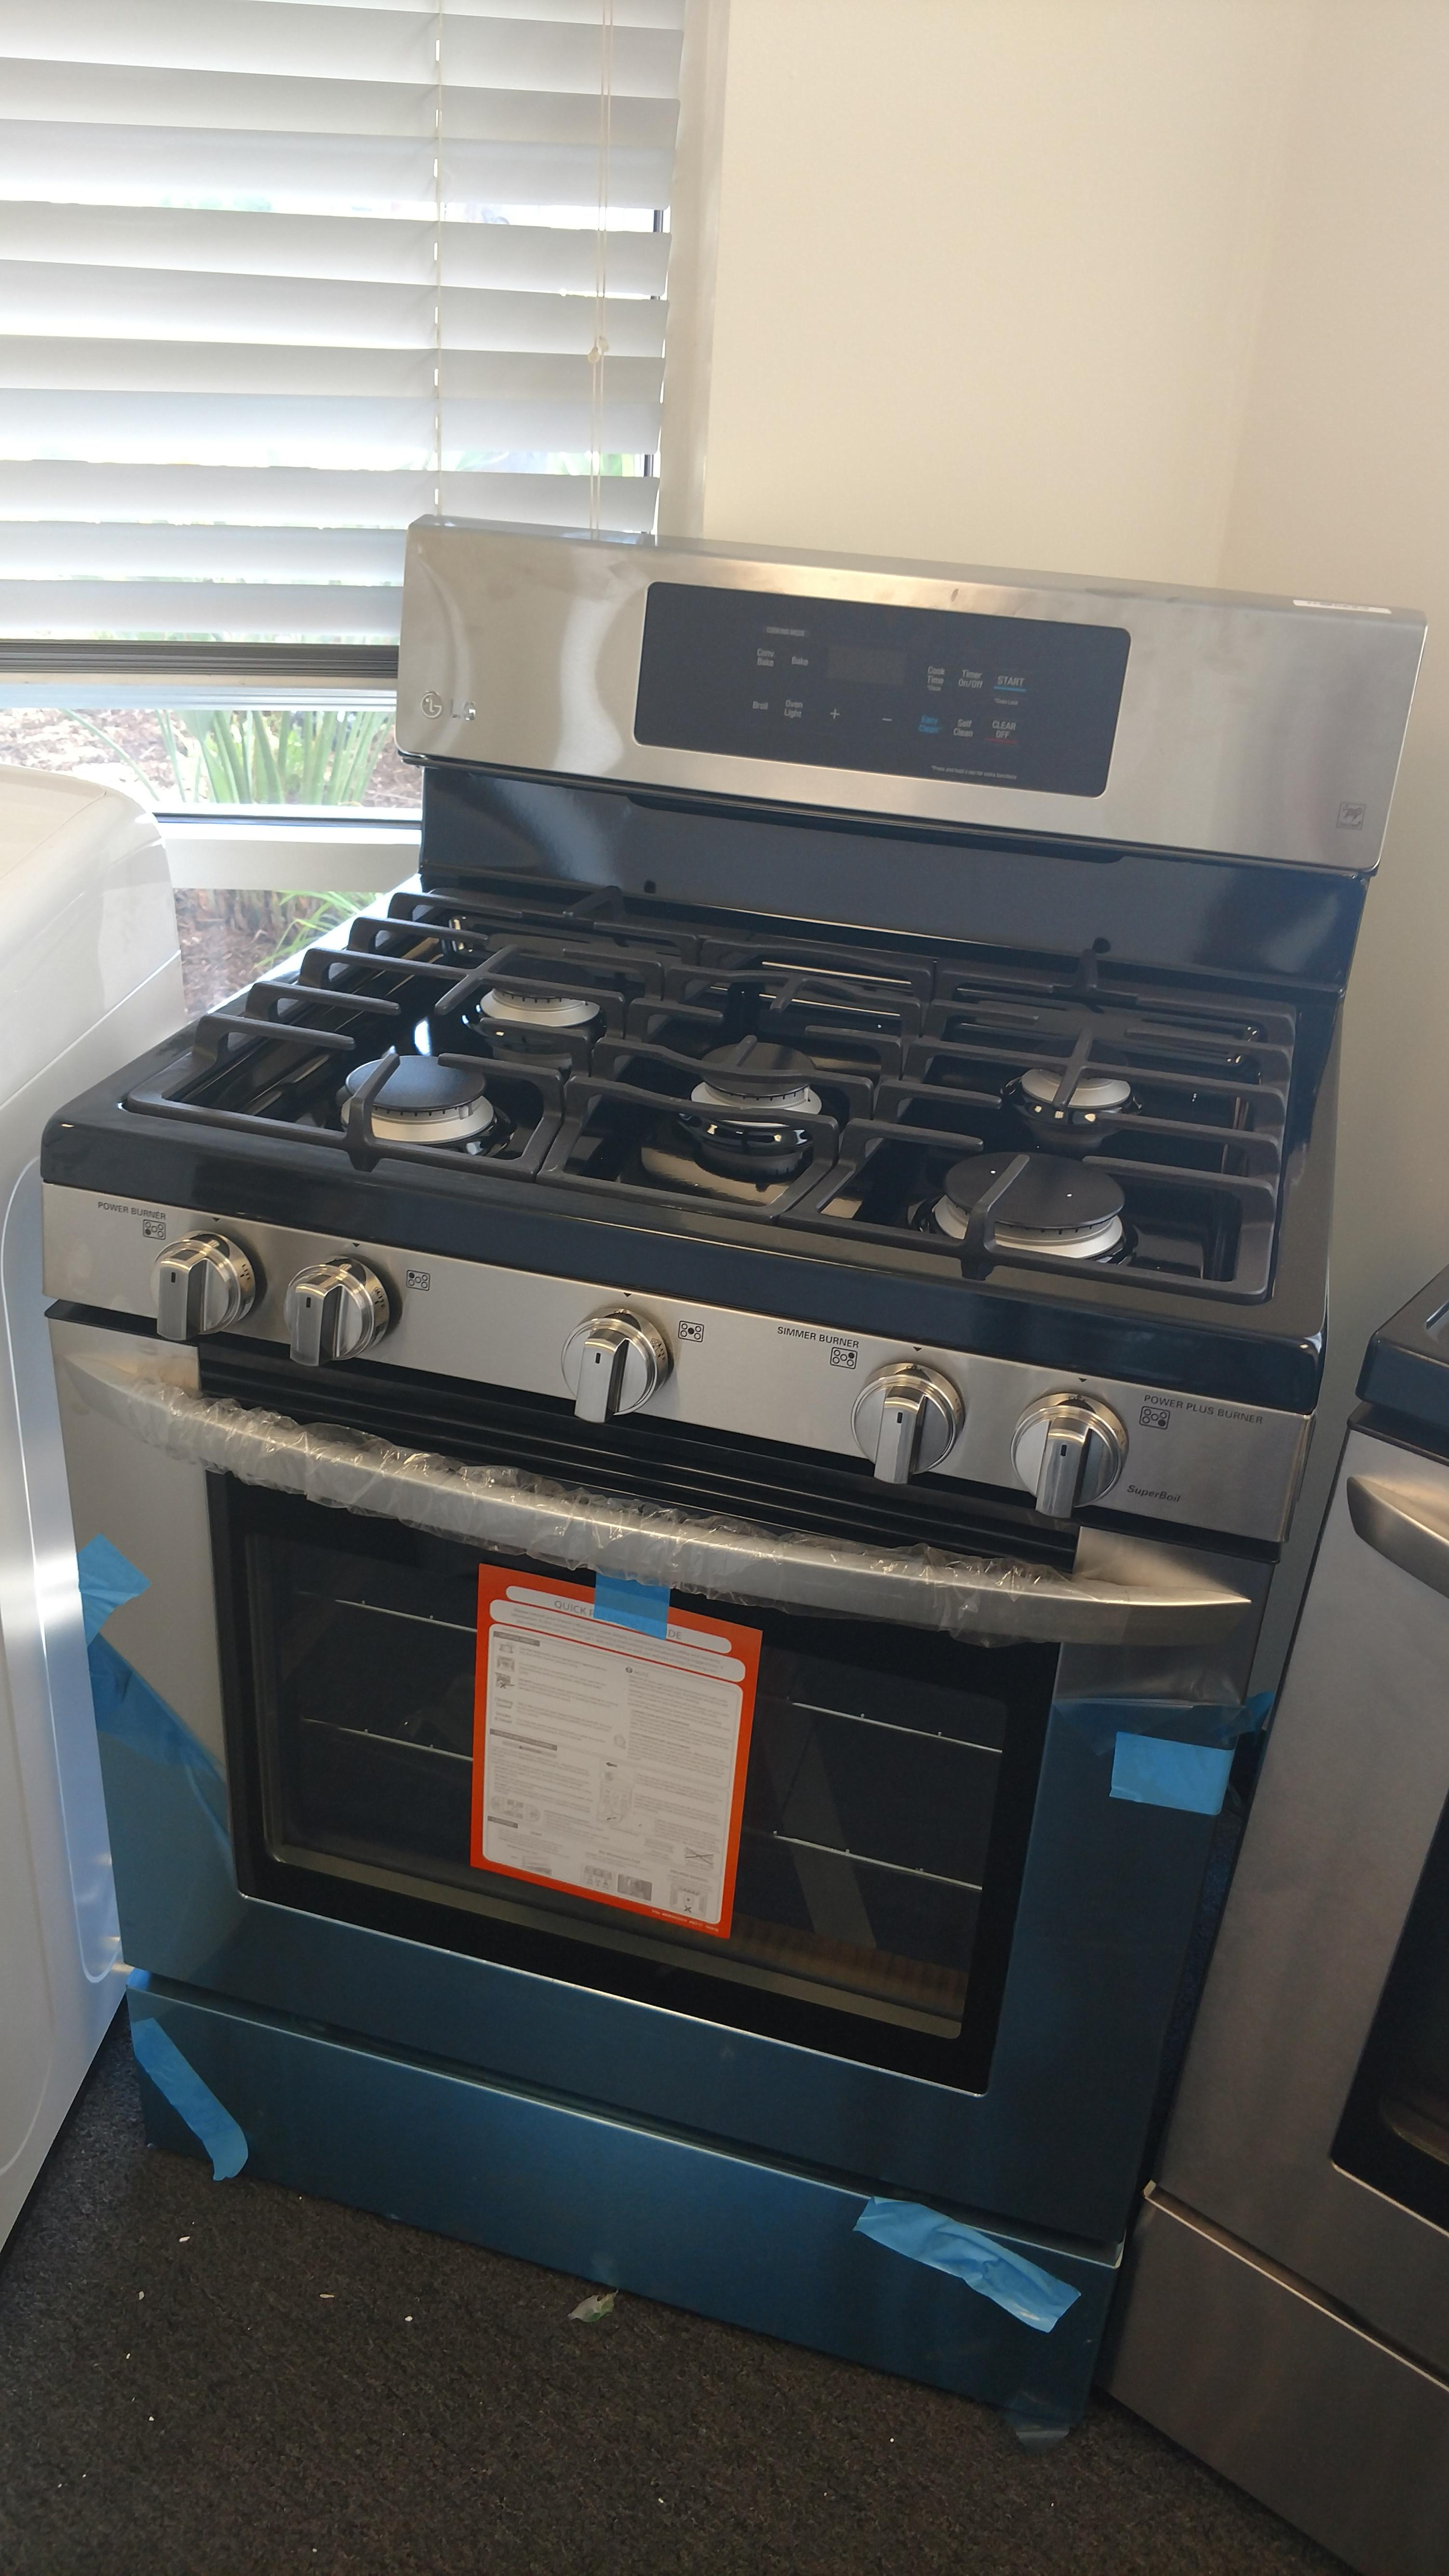 Uncategorized Kitchen Appliance Direct appliance direct in stanton ca 562 888 4 direct